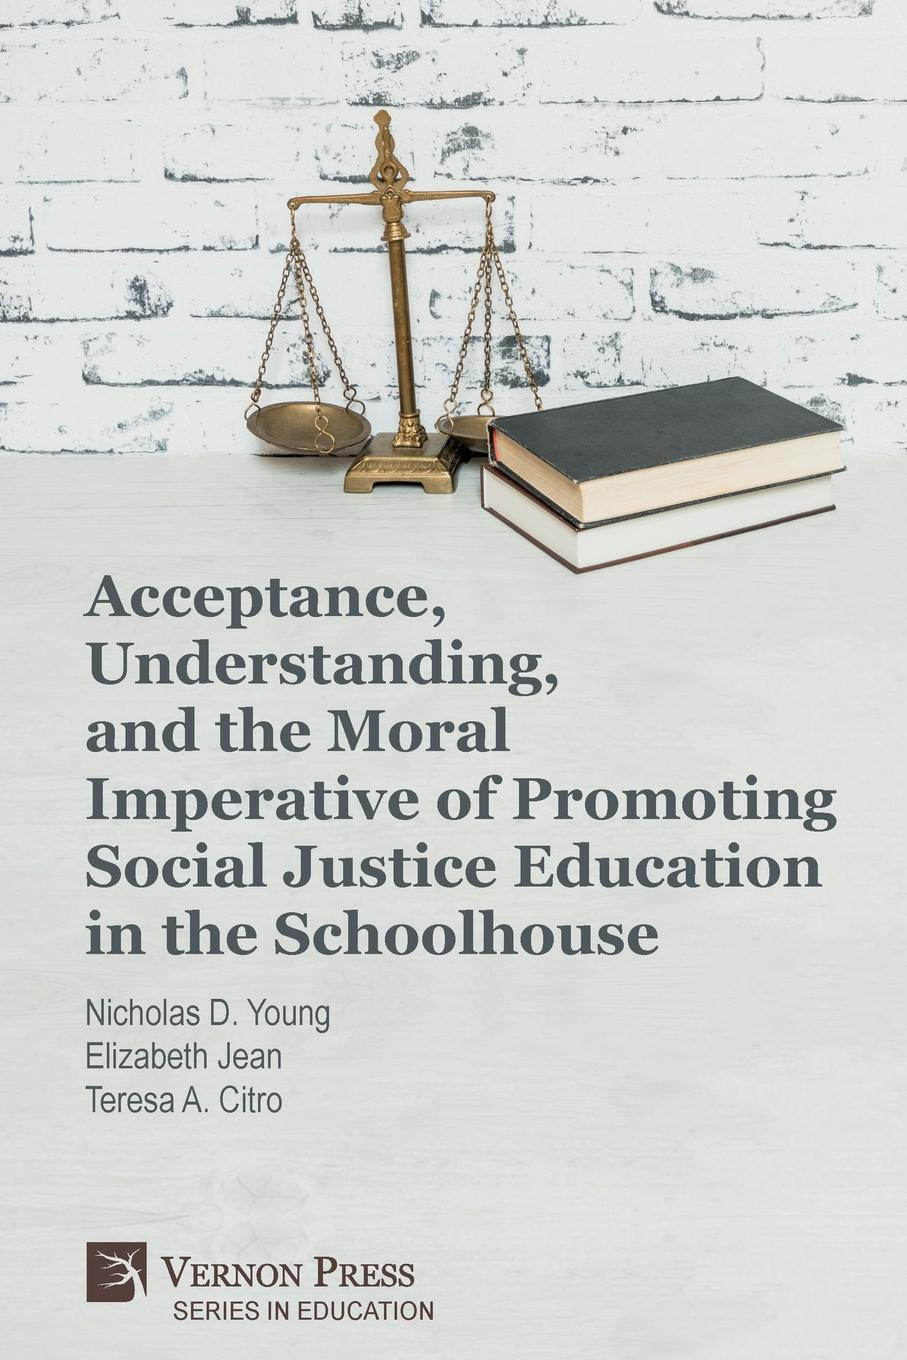 Nicholas D. Young, Elizabeth Jean, Teresa A. Citro Acceptance, Understanding, and the Moral Imperative of Promoting Social Justice Education in the Schoolhouse the sojo journal educational foundations and social justice education volume 1 number 1 2015